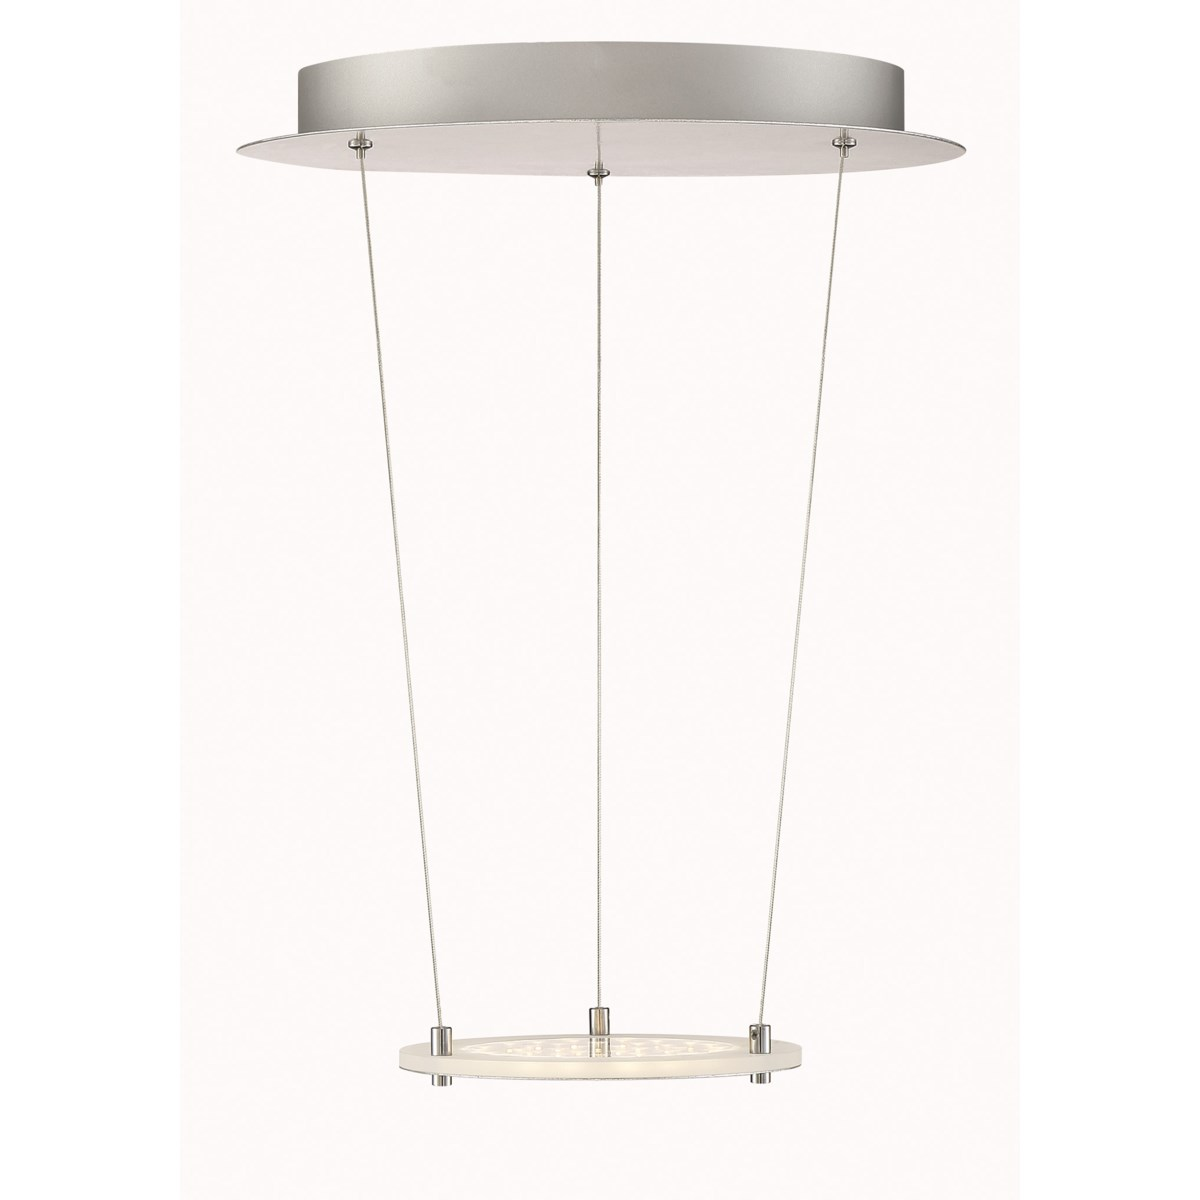 Zenith Pendant in Silver Plated and Chrome